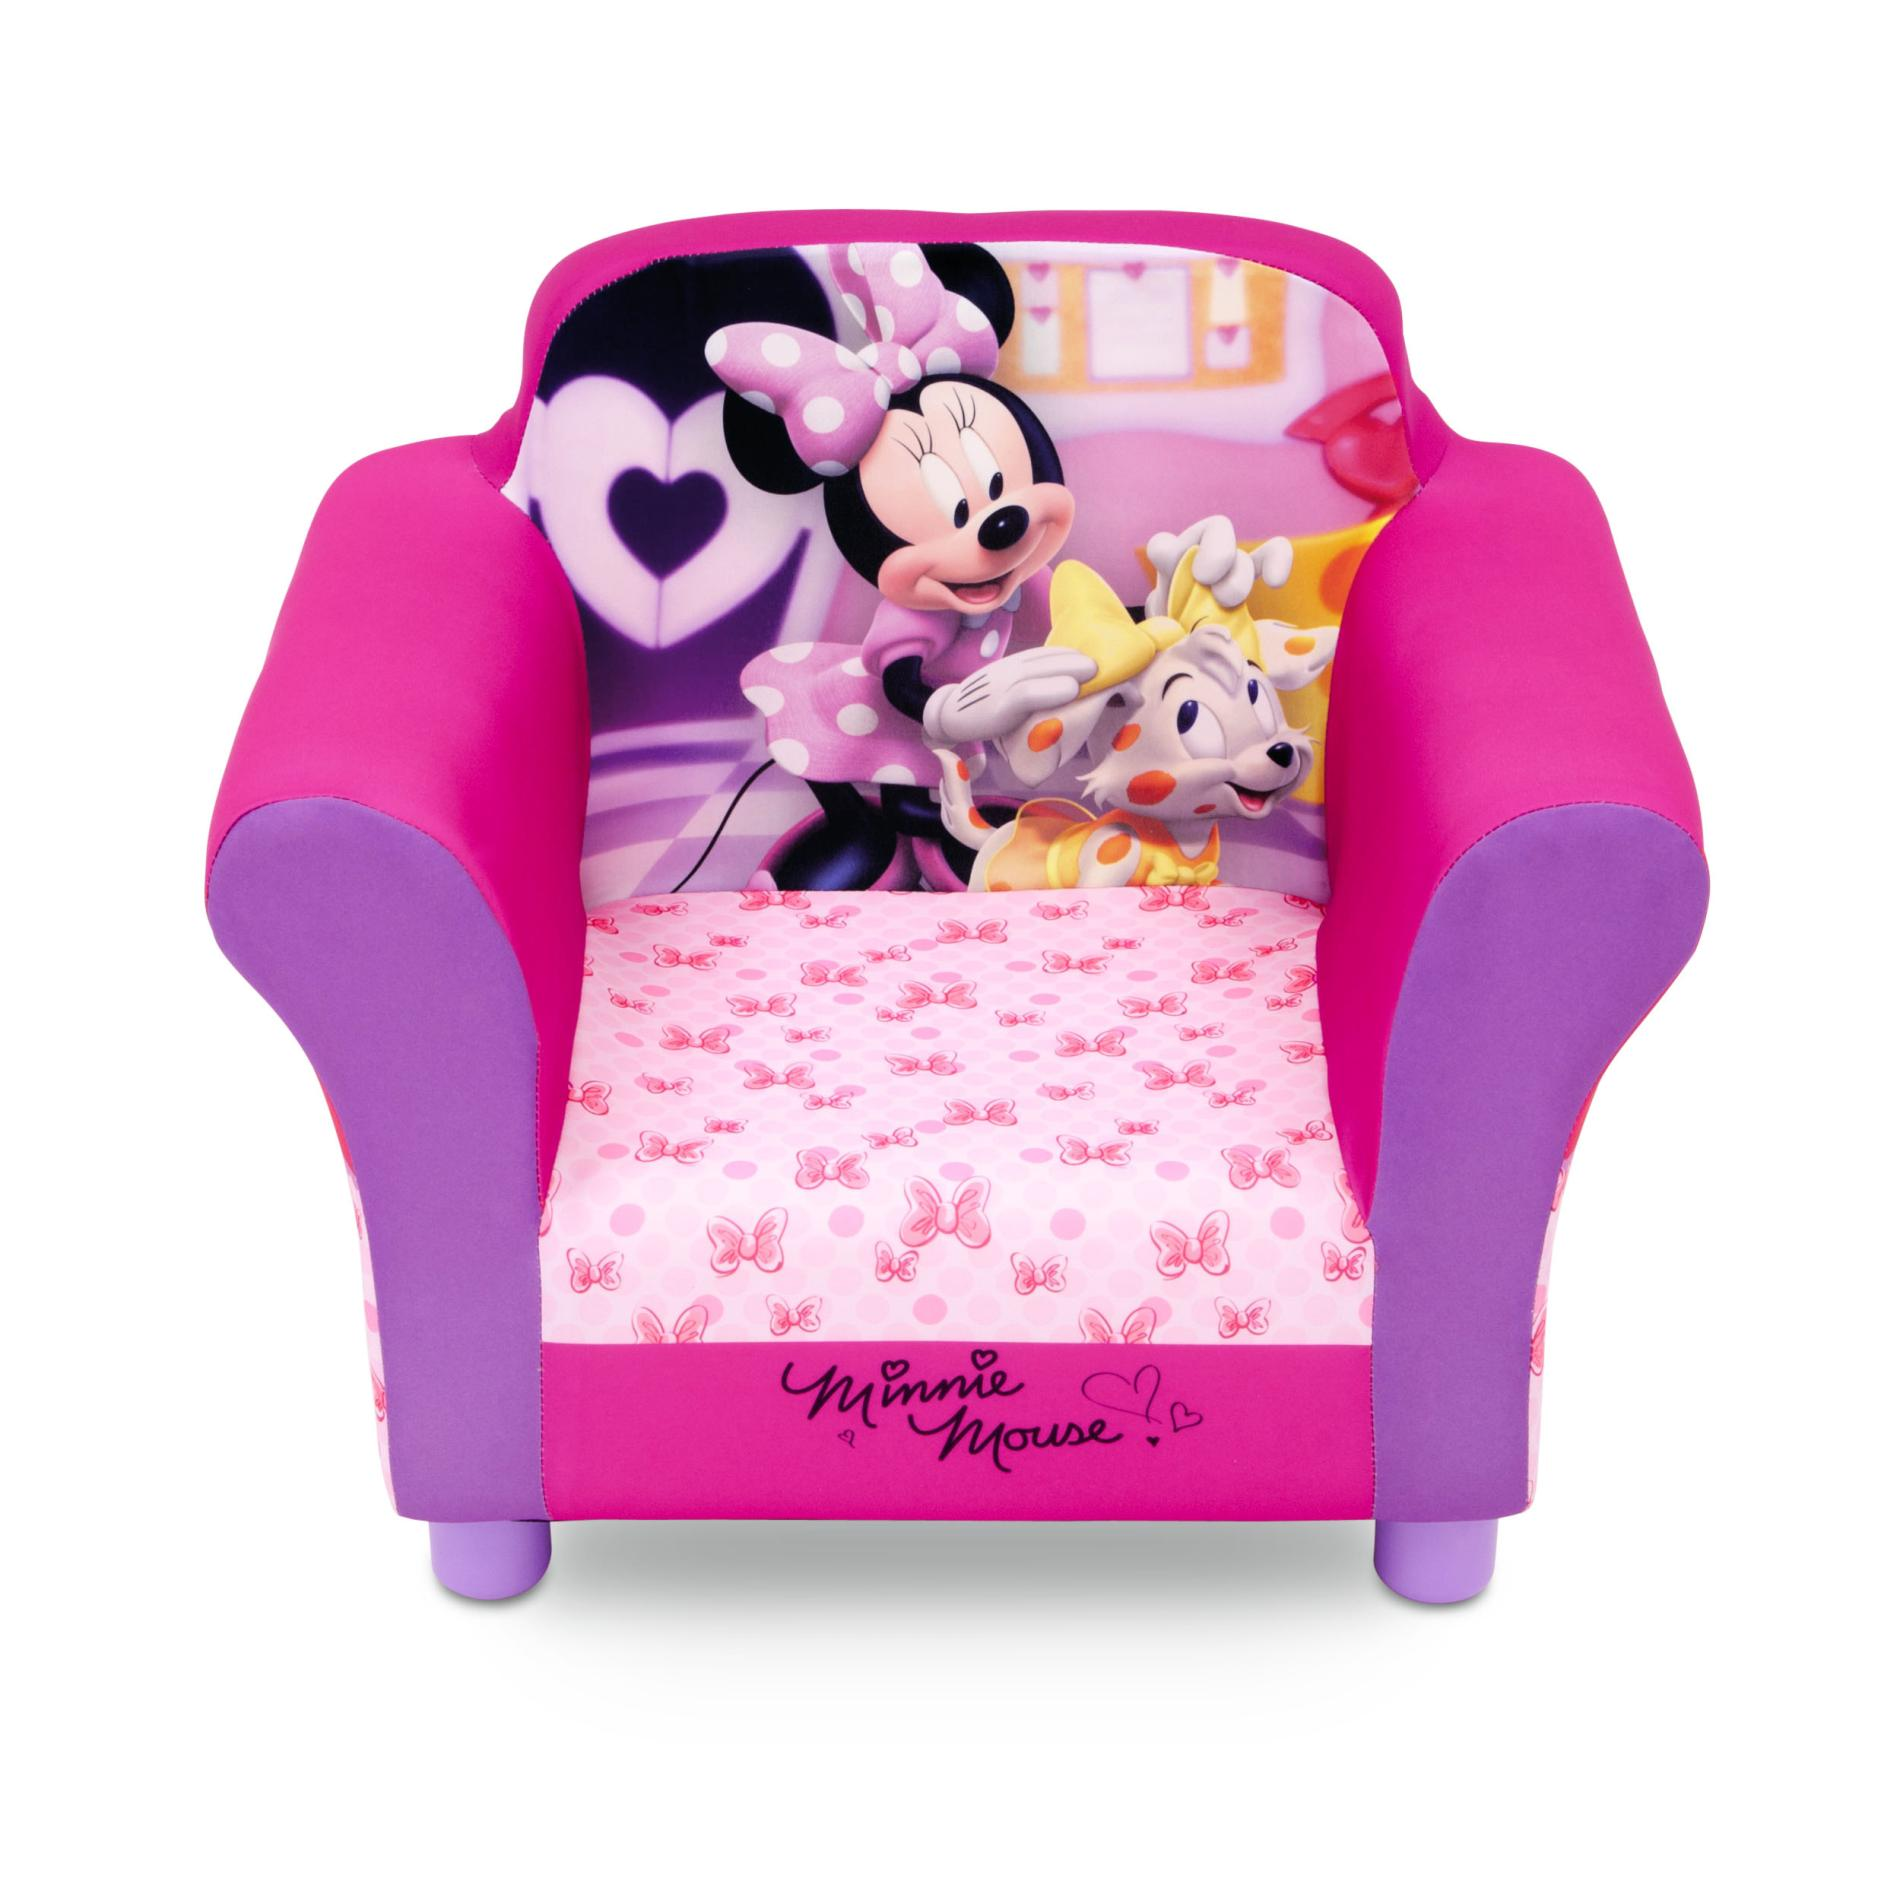 Toddler Sofa Chair Disney Toddler Girl 39s Upholstered Chair Minnie Mouse